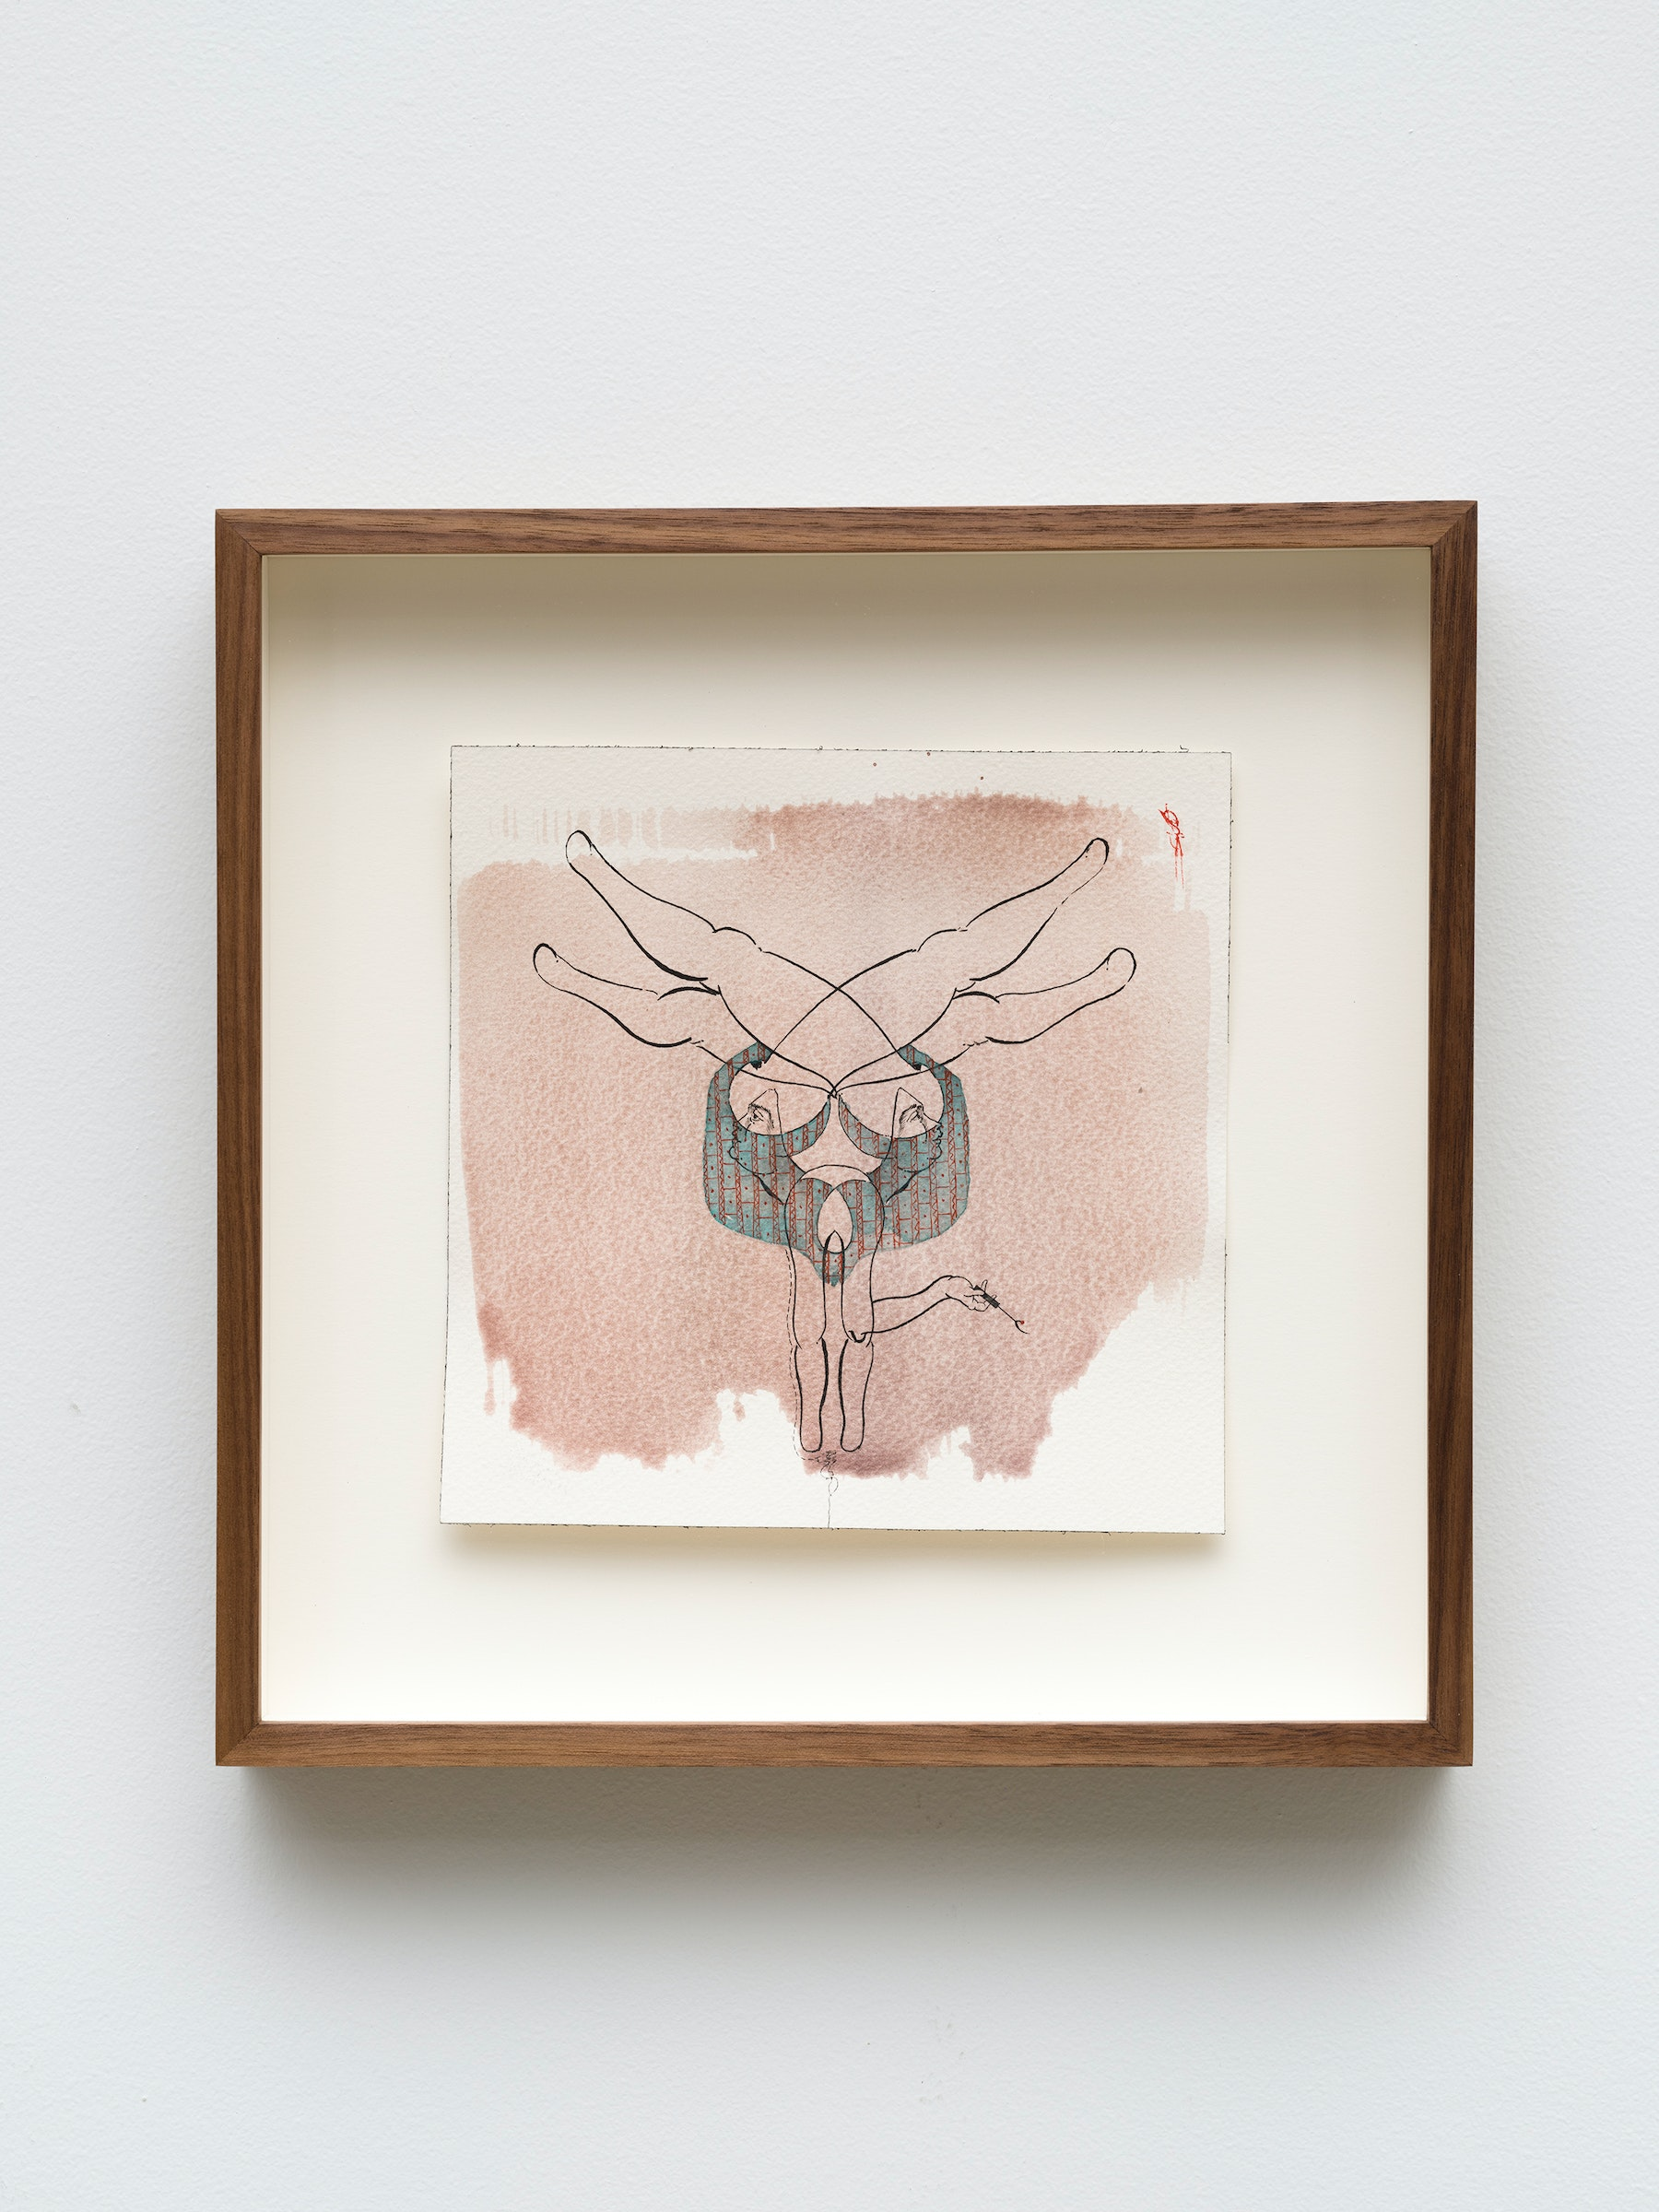 """Hayv Kahraman """"untitled,"""" 2021 Watercolor, gouache and dried pigment on paper 7 ²⁹⁄₃₂"""" x 7 ²⁹⁄₃₂"""" [HxW] (20.06 x 20.06 cm) paper size, 12 ¹⁄₂"""" x 12 ¹⁄₂"""" x 2"""" [HxWxD] (31.75 x 31.75 x 5.08 cm) framed Inventory #KAR191 Courtesy of the artist and Vielmetter Los Angeles Photo credit: Jeff Mclane"""